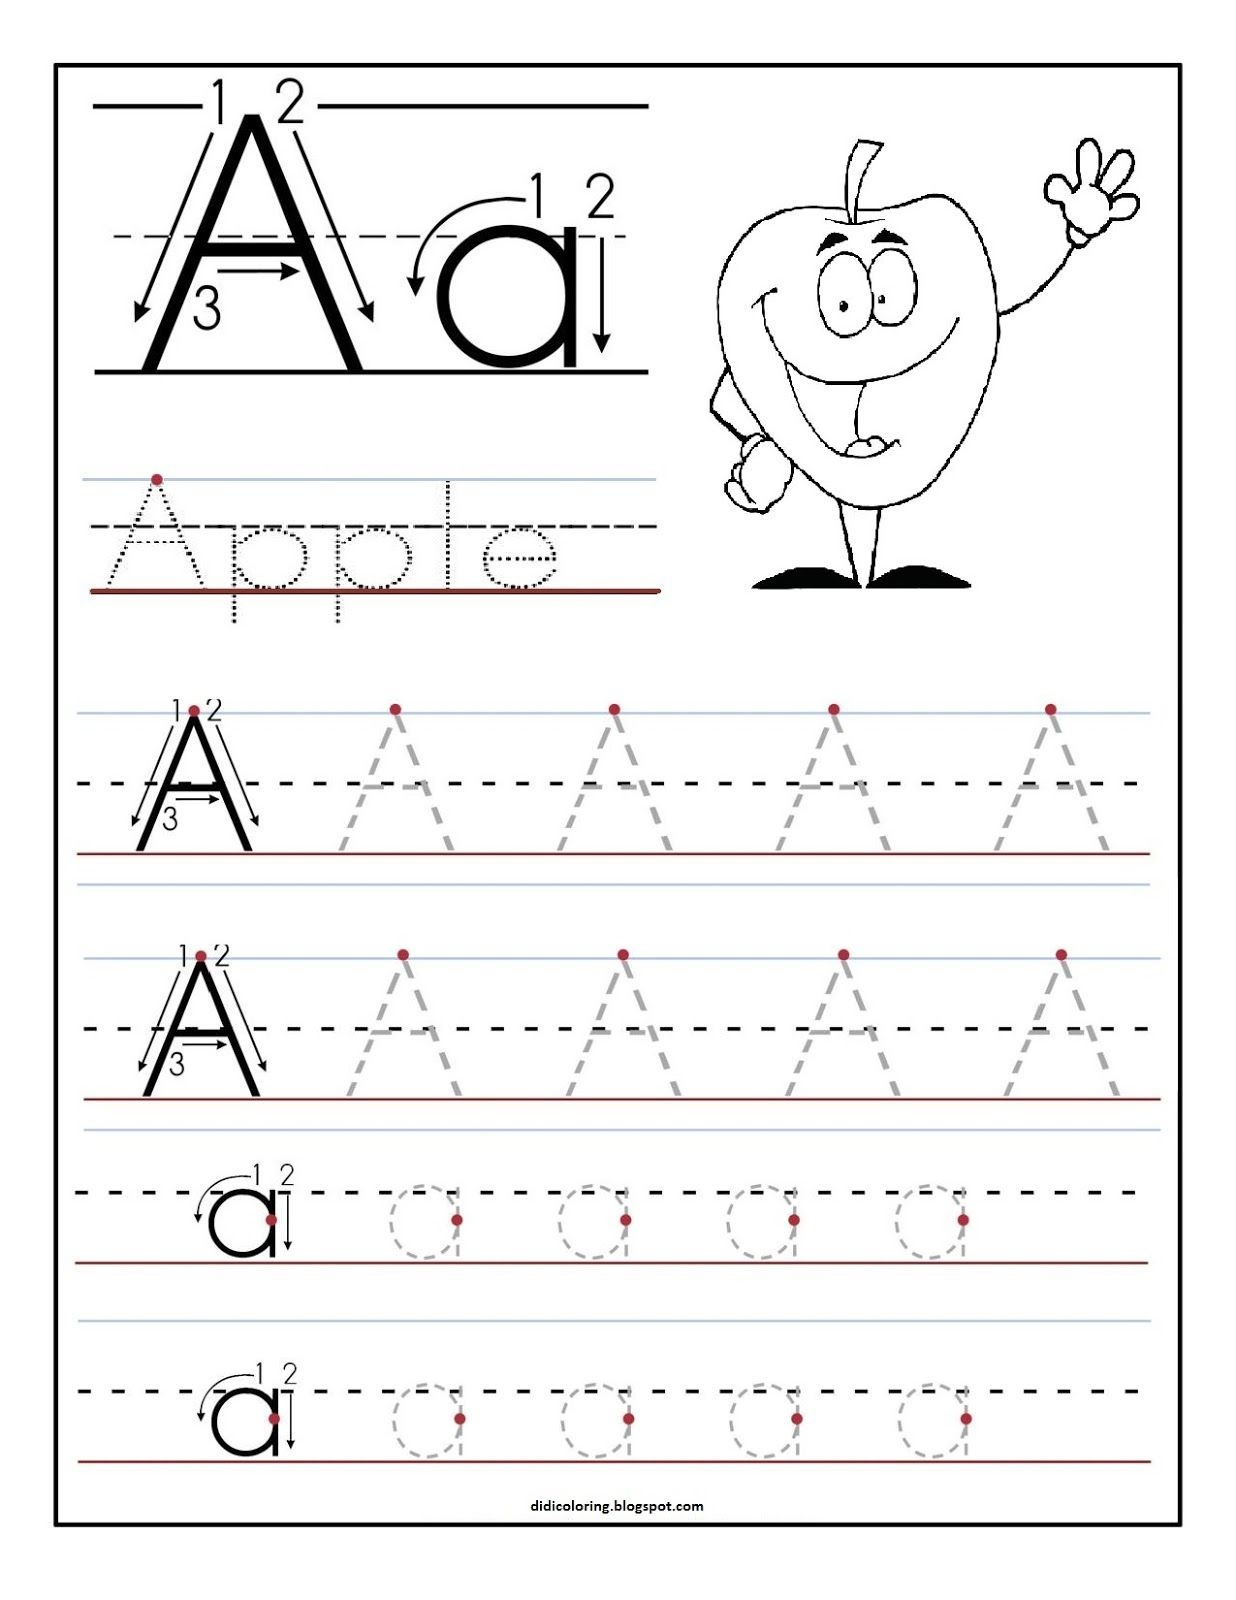 Free Printable Worksheet Letter A For Your Child To Learn And Write - Free Printable Letter Writing Worksheets